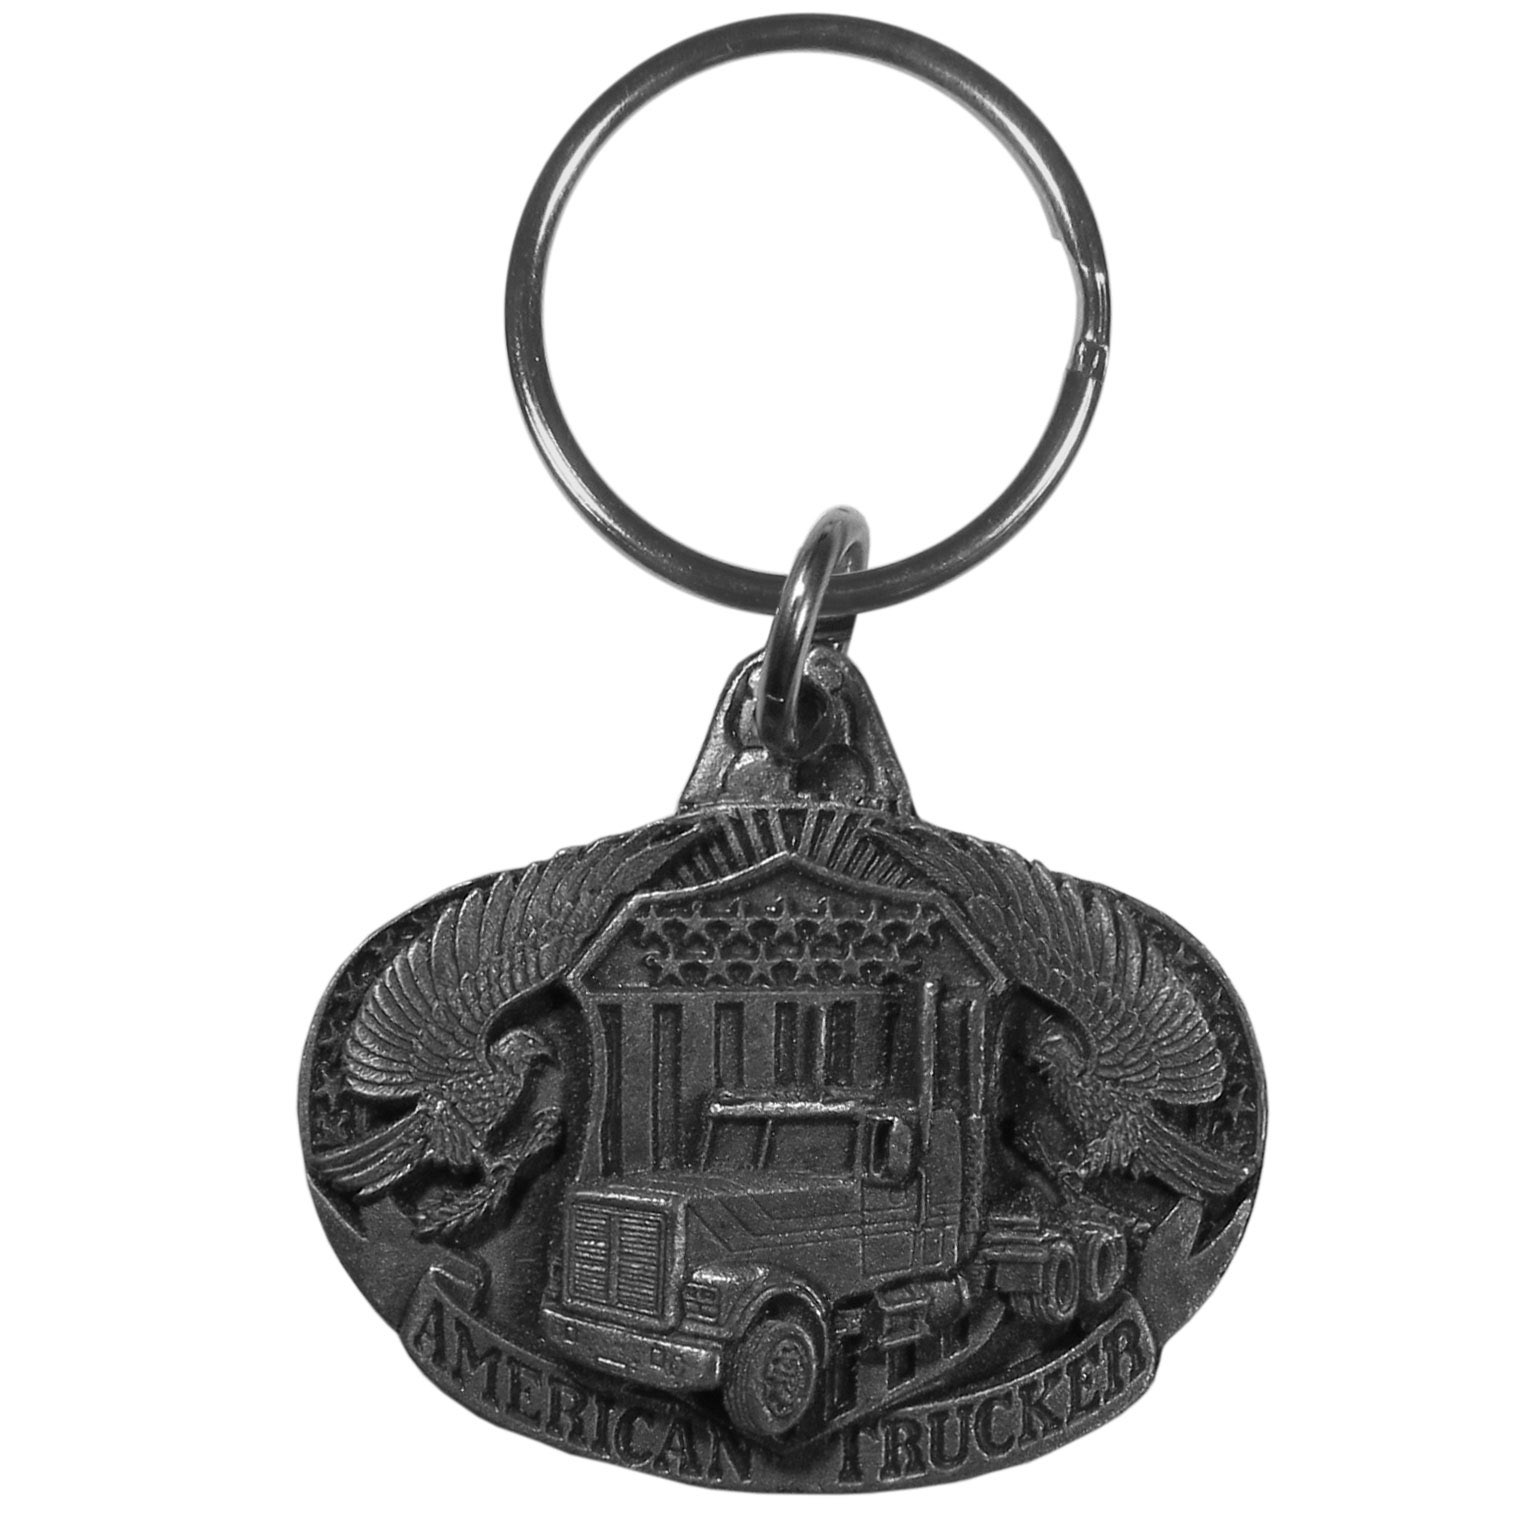 American Trucker Antiqued Key Chain - Celebrate a proud American industry with this trucker keyring. Our unique key chains are fully cast metal fobs with exceptional carved detail. Since these key rings are fully metal they stand up the rigorous day to day use and will keep looking great for years to come. The original designs are a great way to express your personal style while keeping your house and auto keys organized.